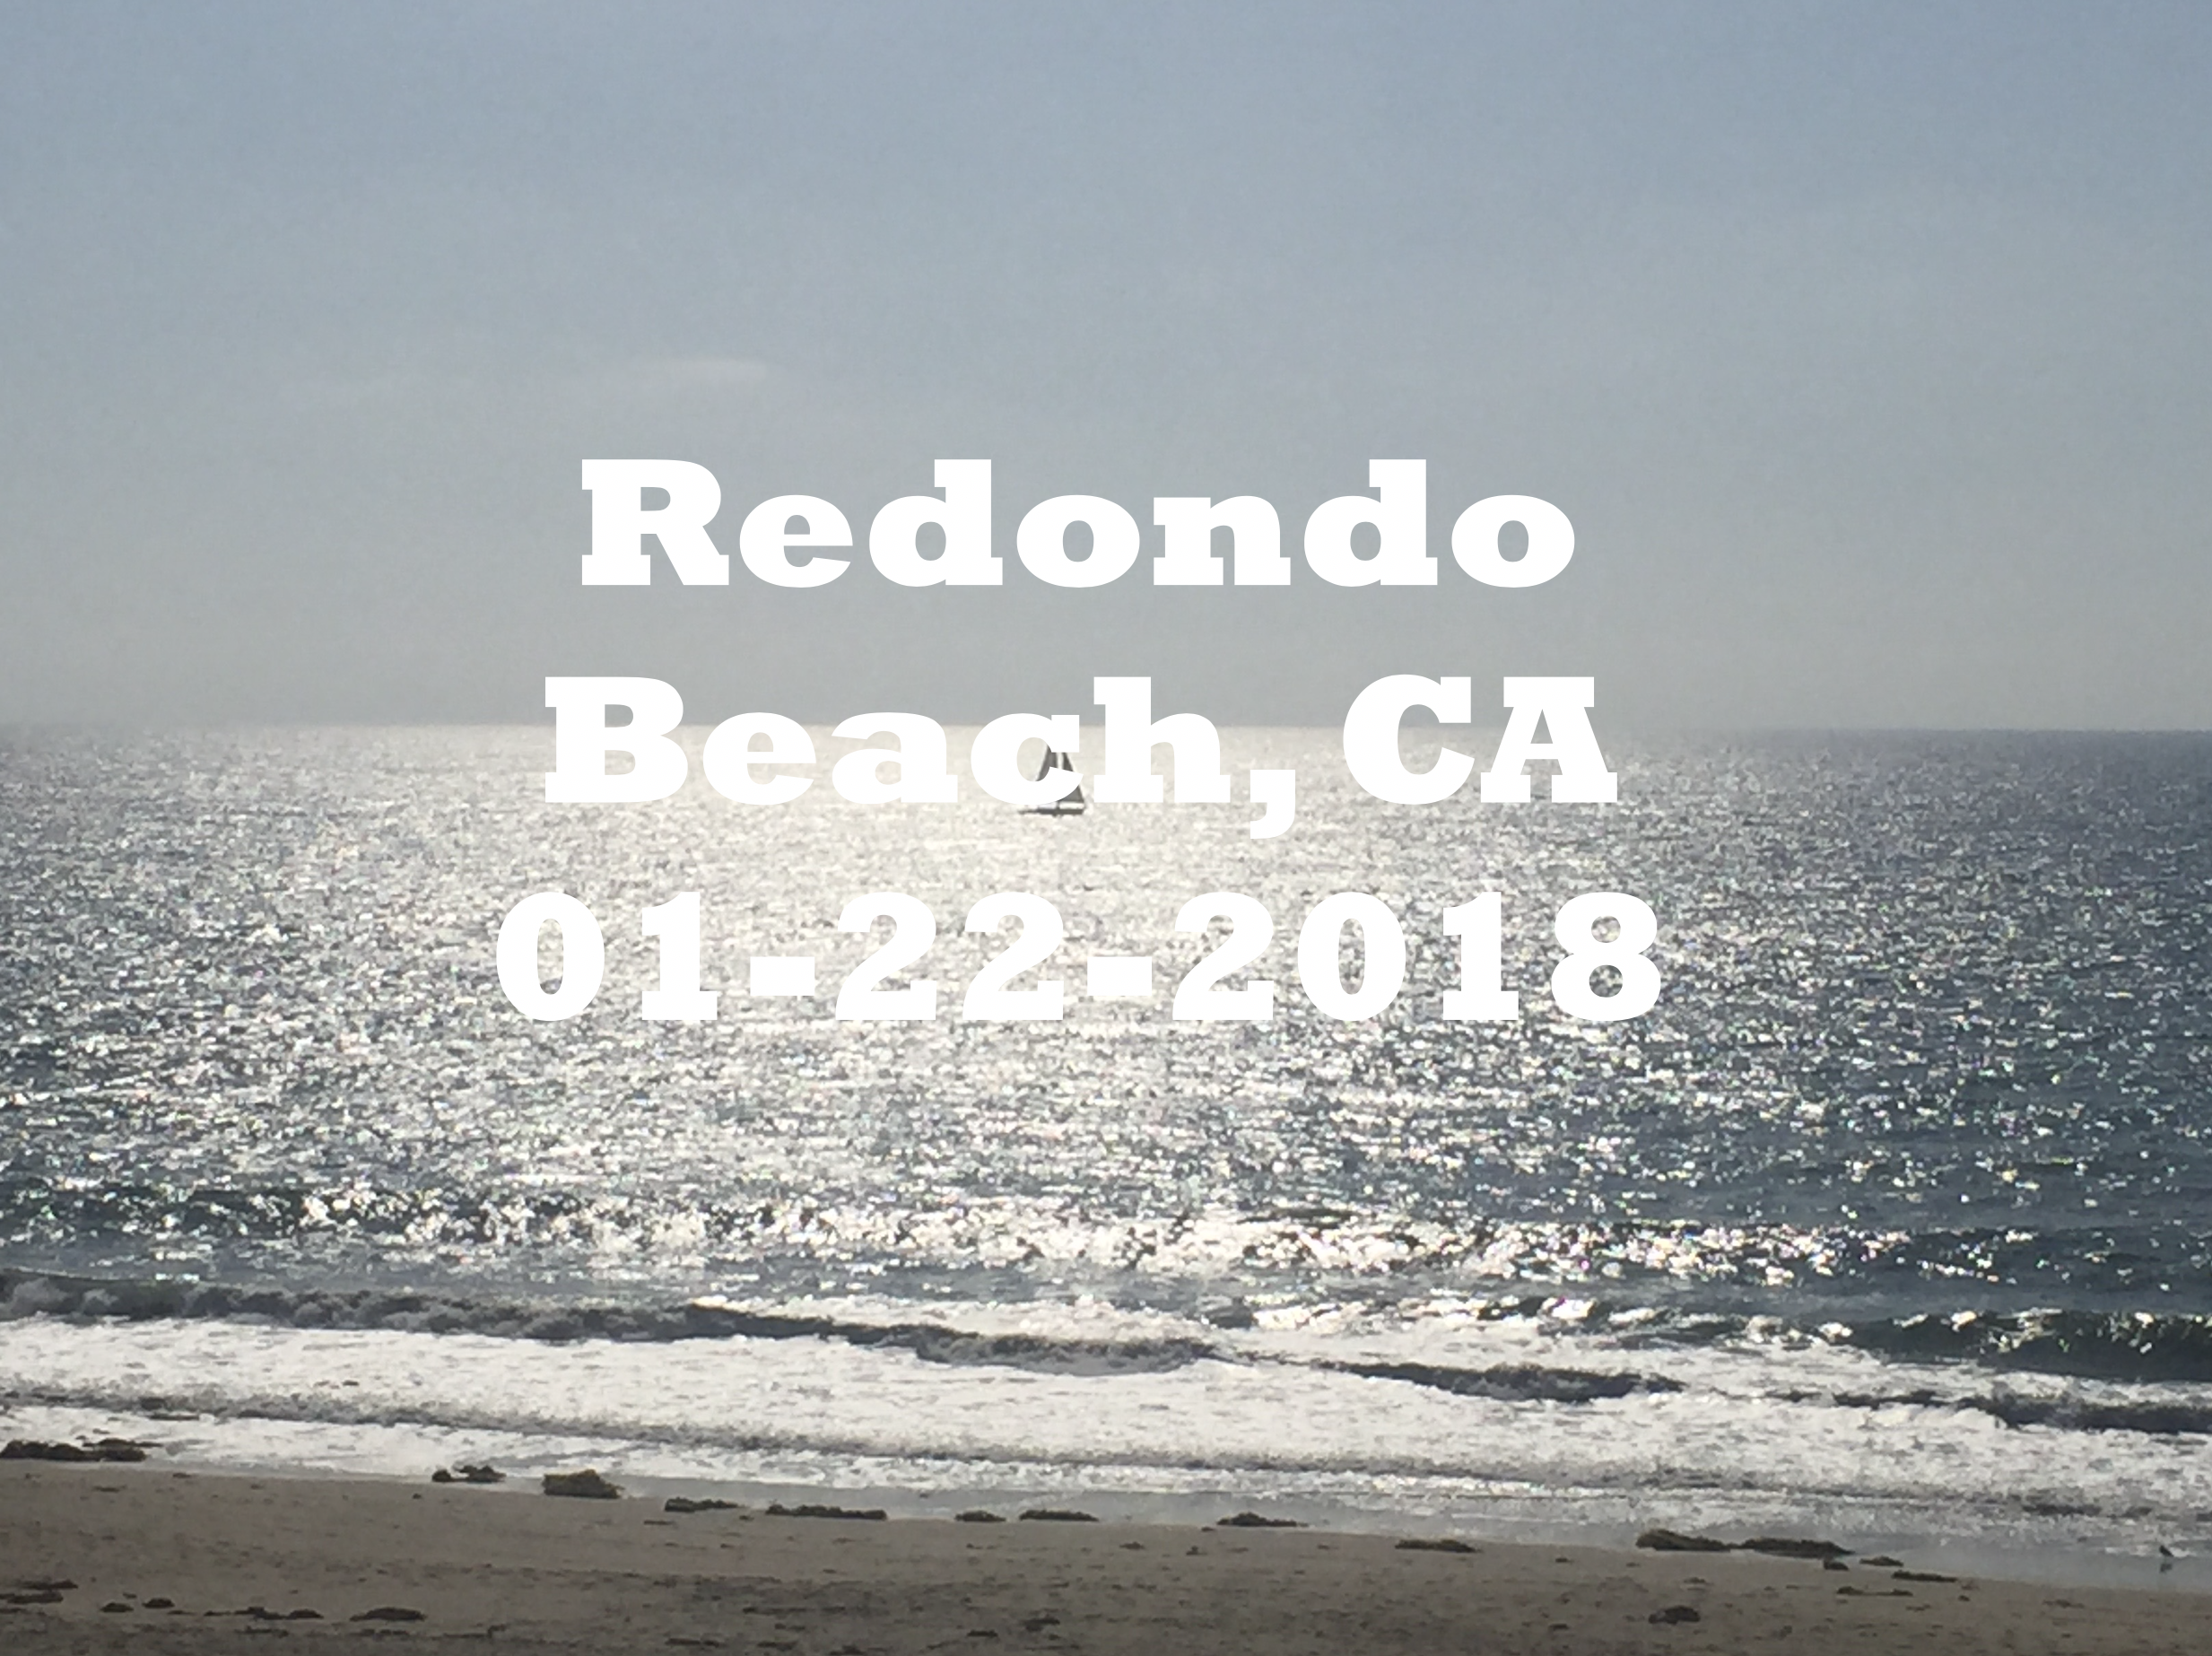 Redondo Beach with Dolphins